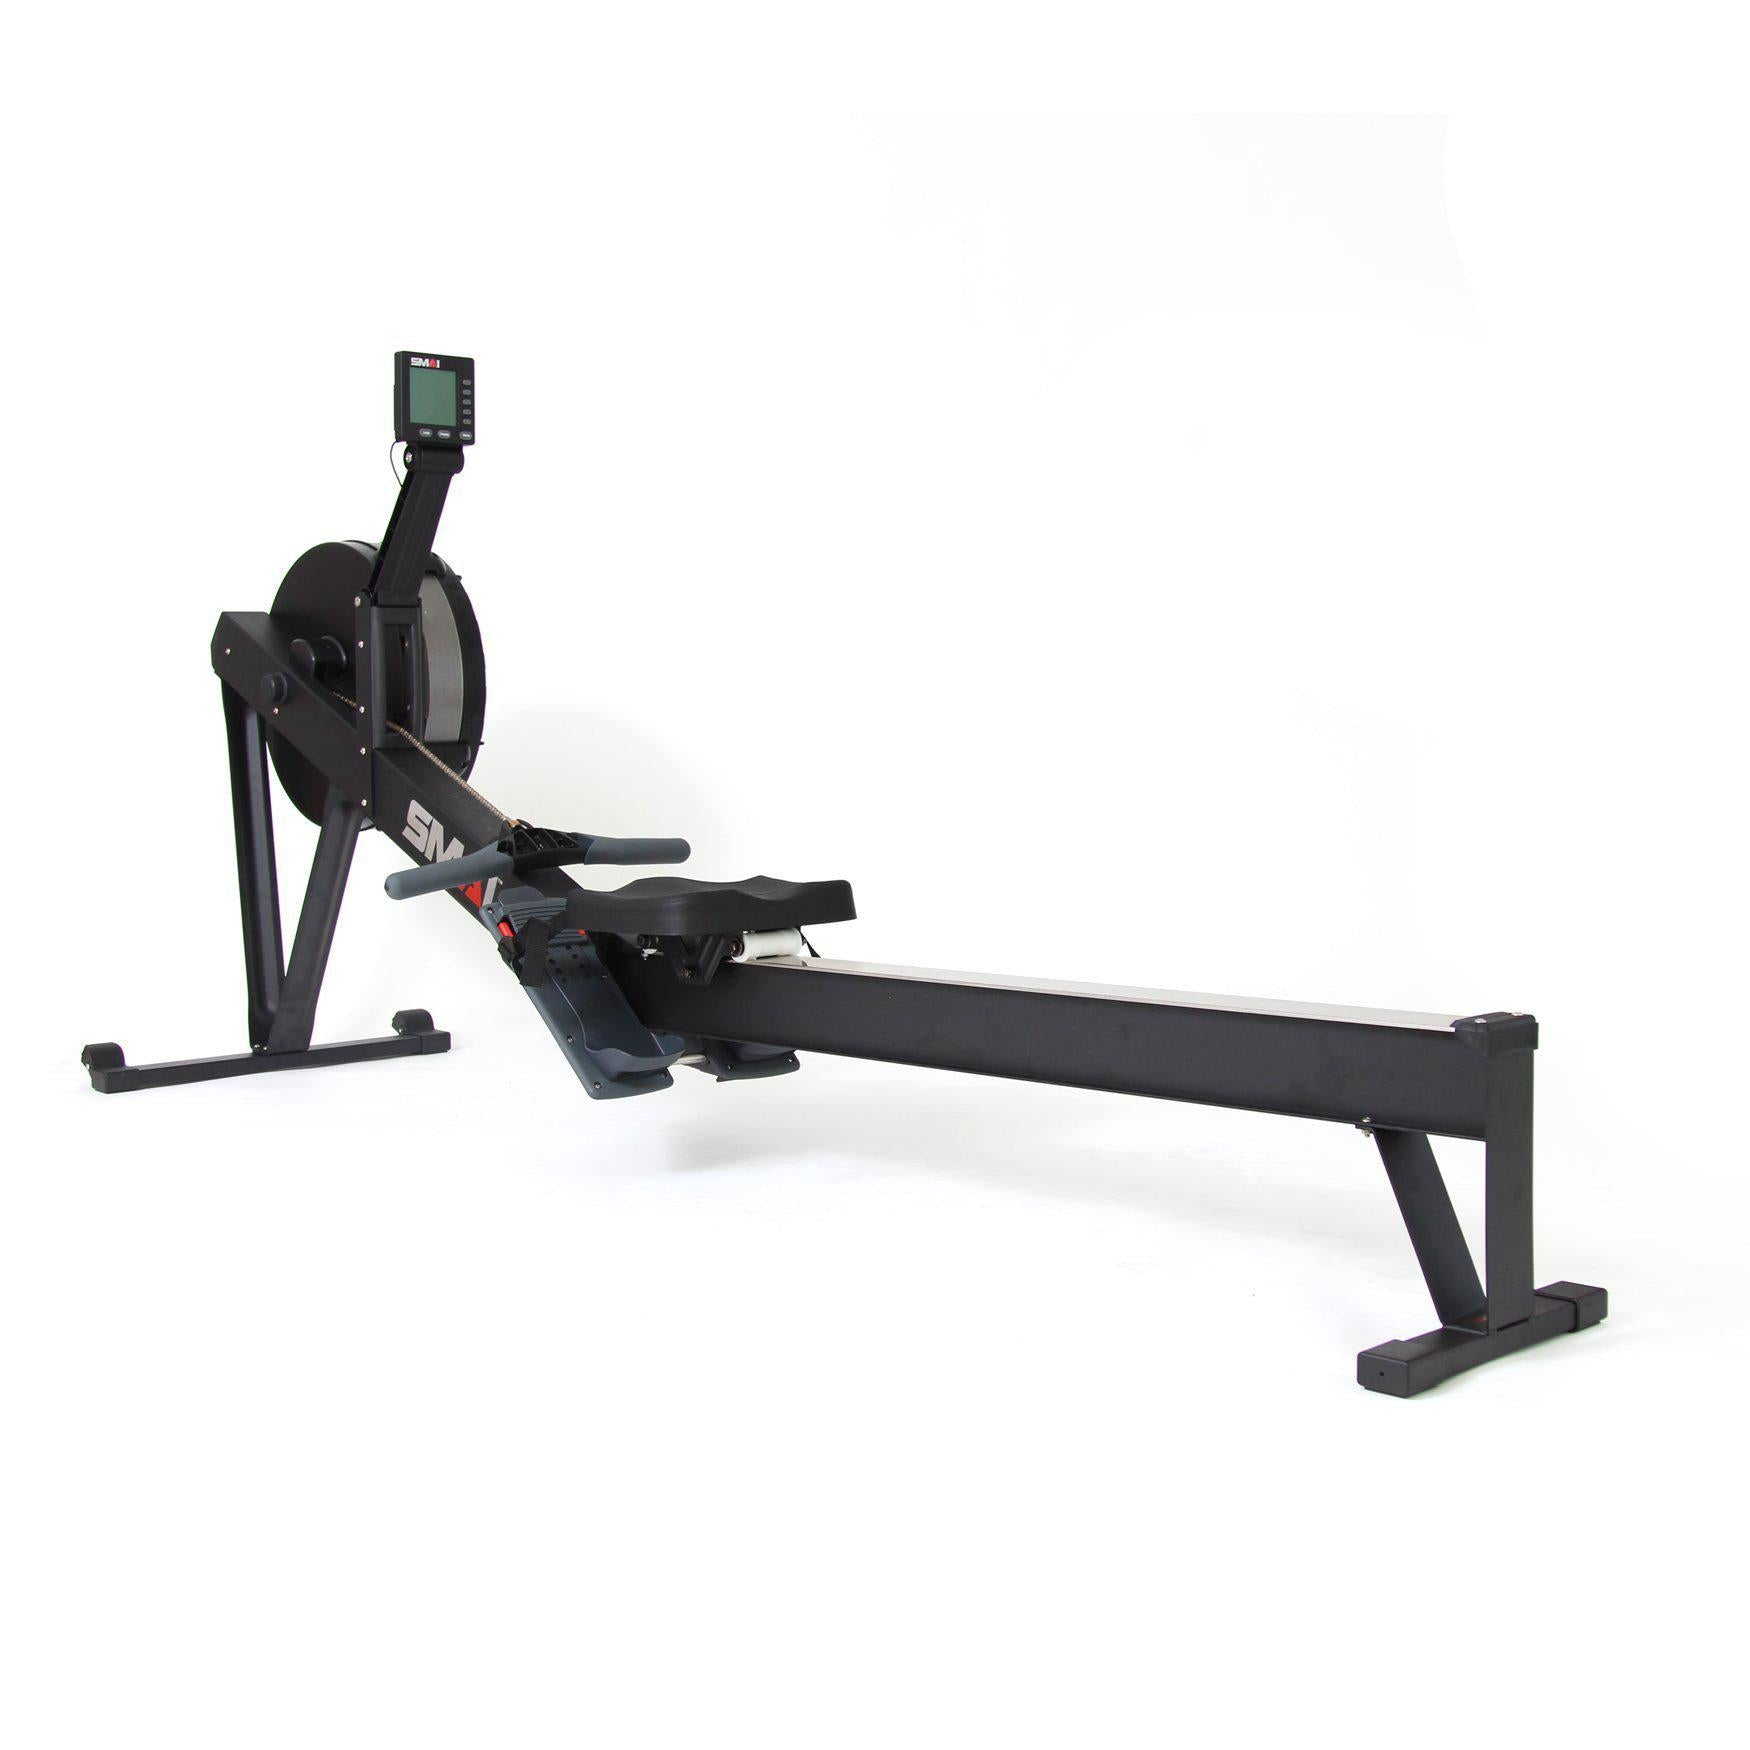 SMAI Air Rower-Rowing Machine-SMAI-Cardio Online